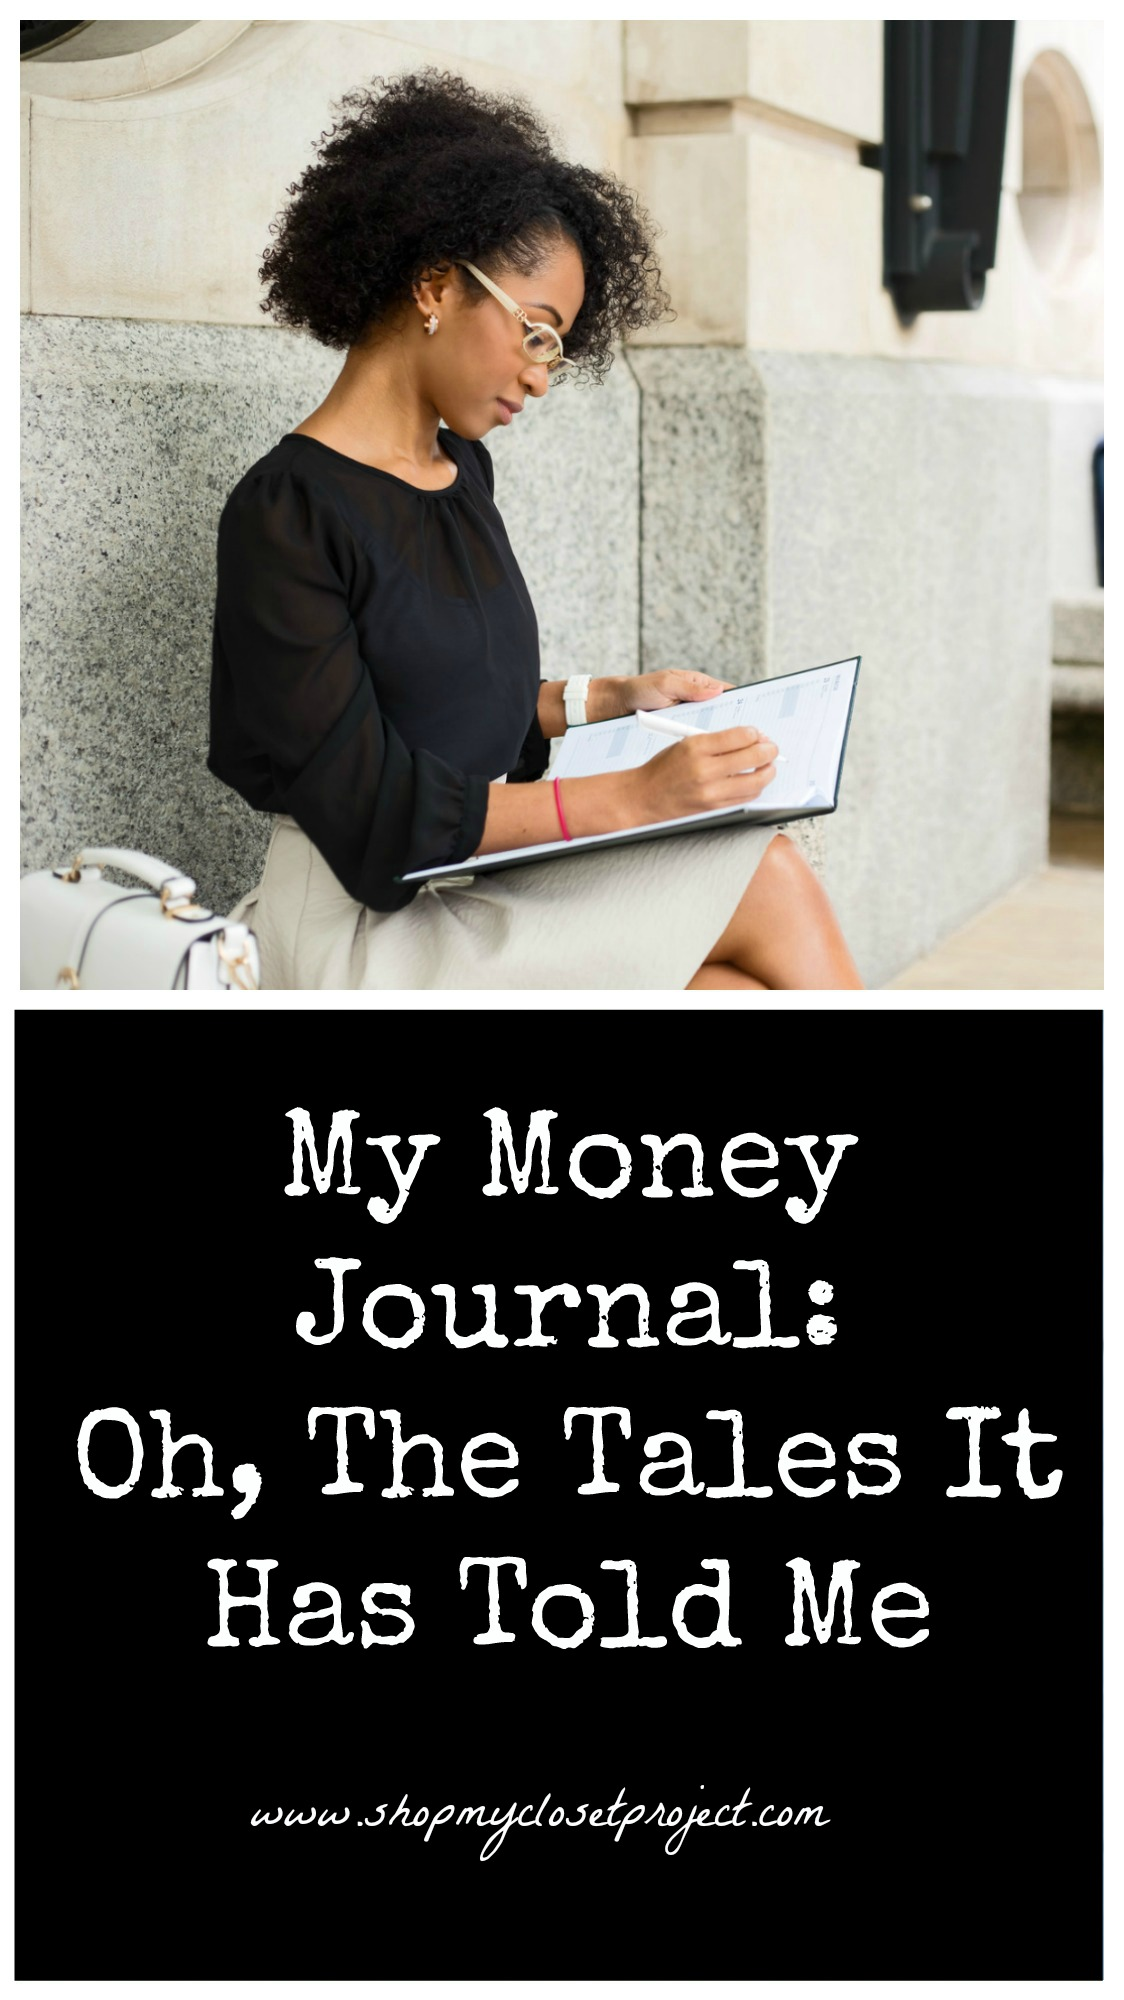 My Money Journal-Oh, The Tales It Has Told Me